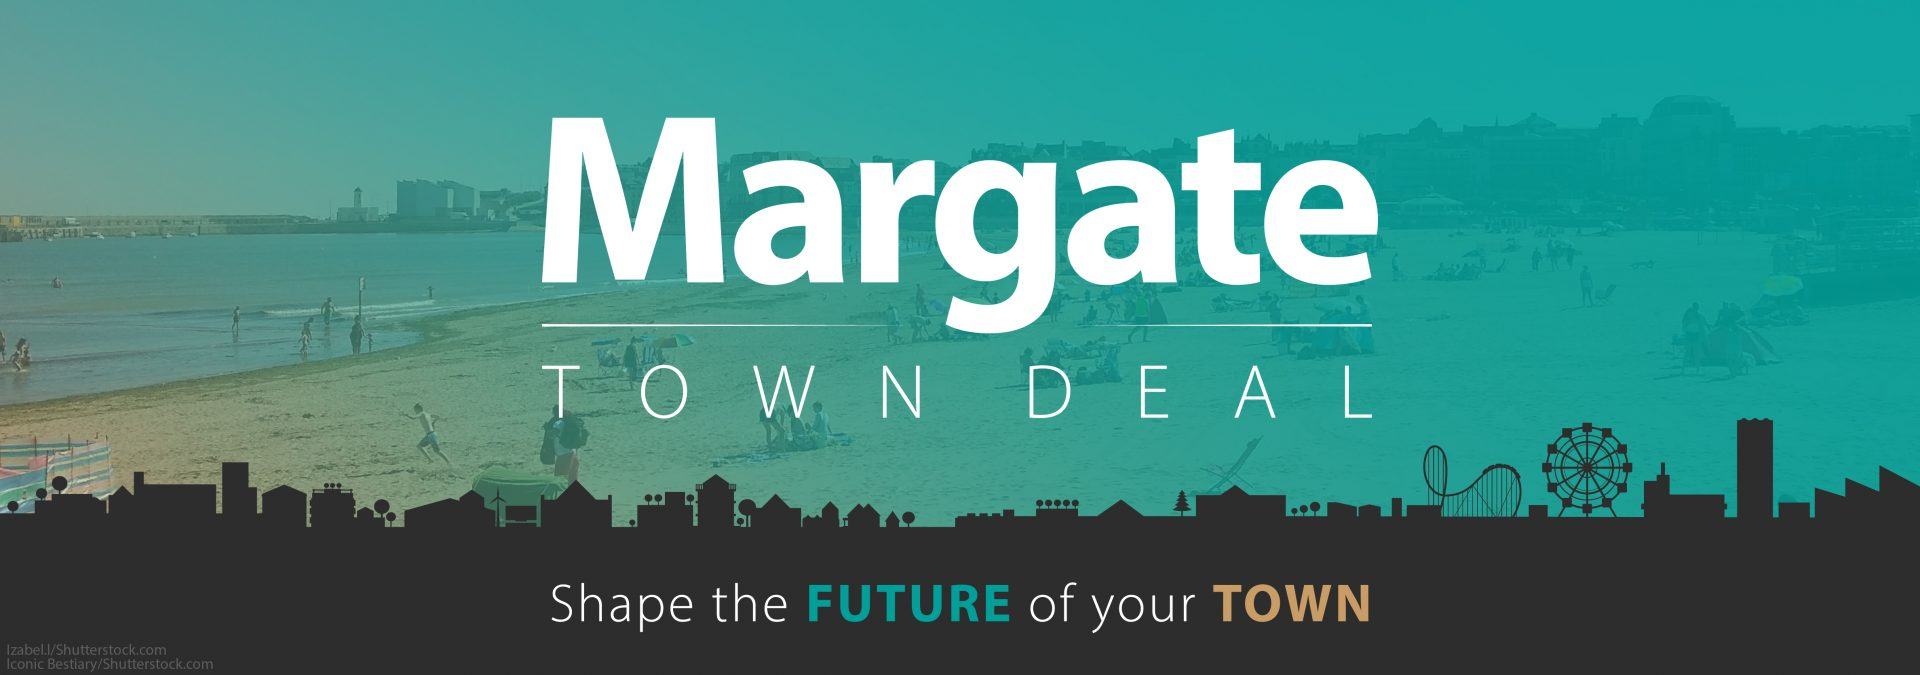 Margate Town Deal